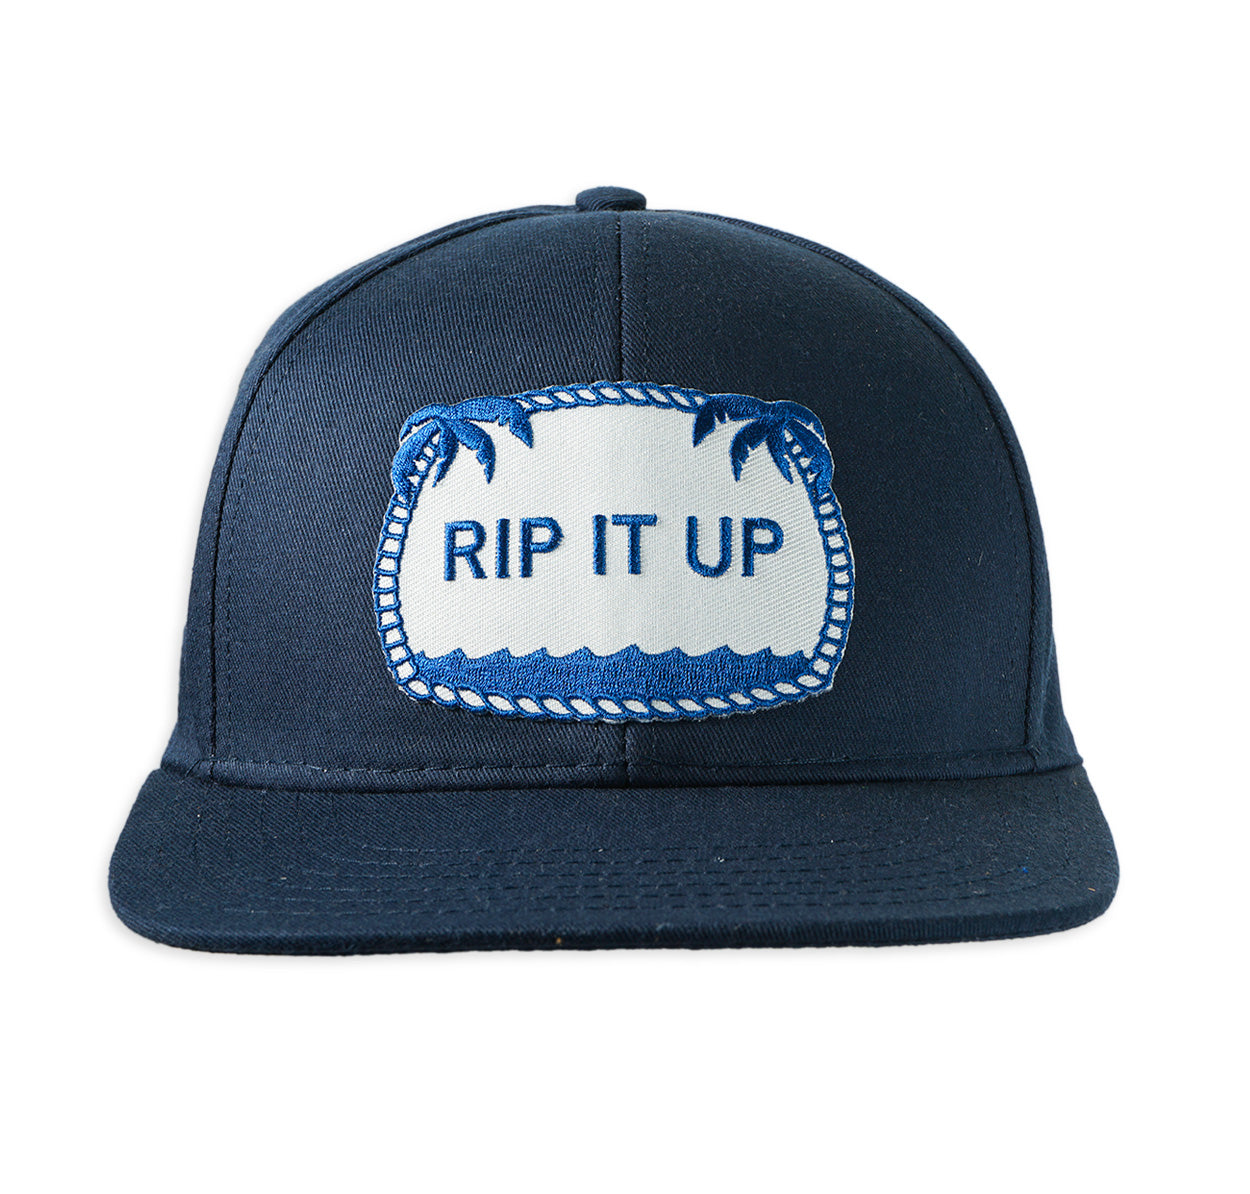 Rip It Up ball cap